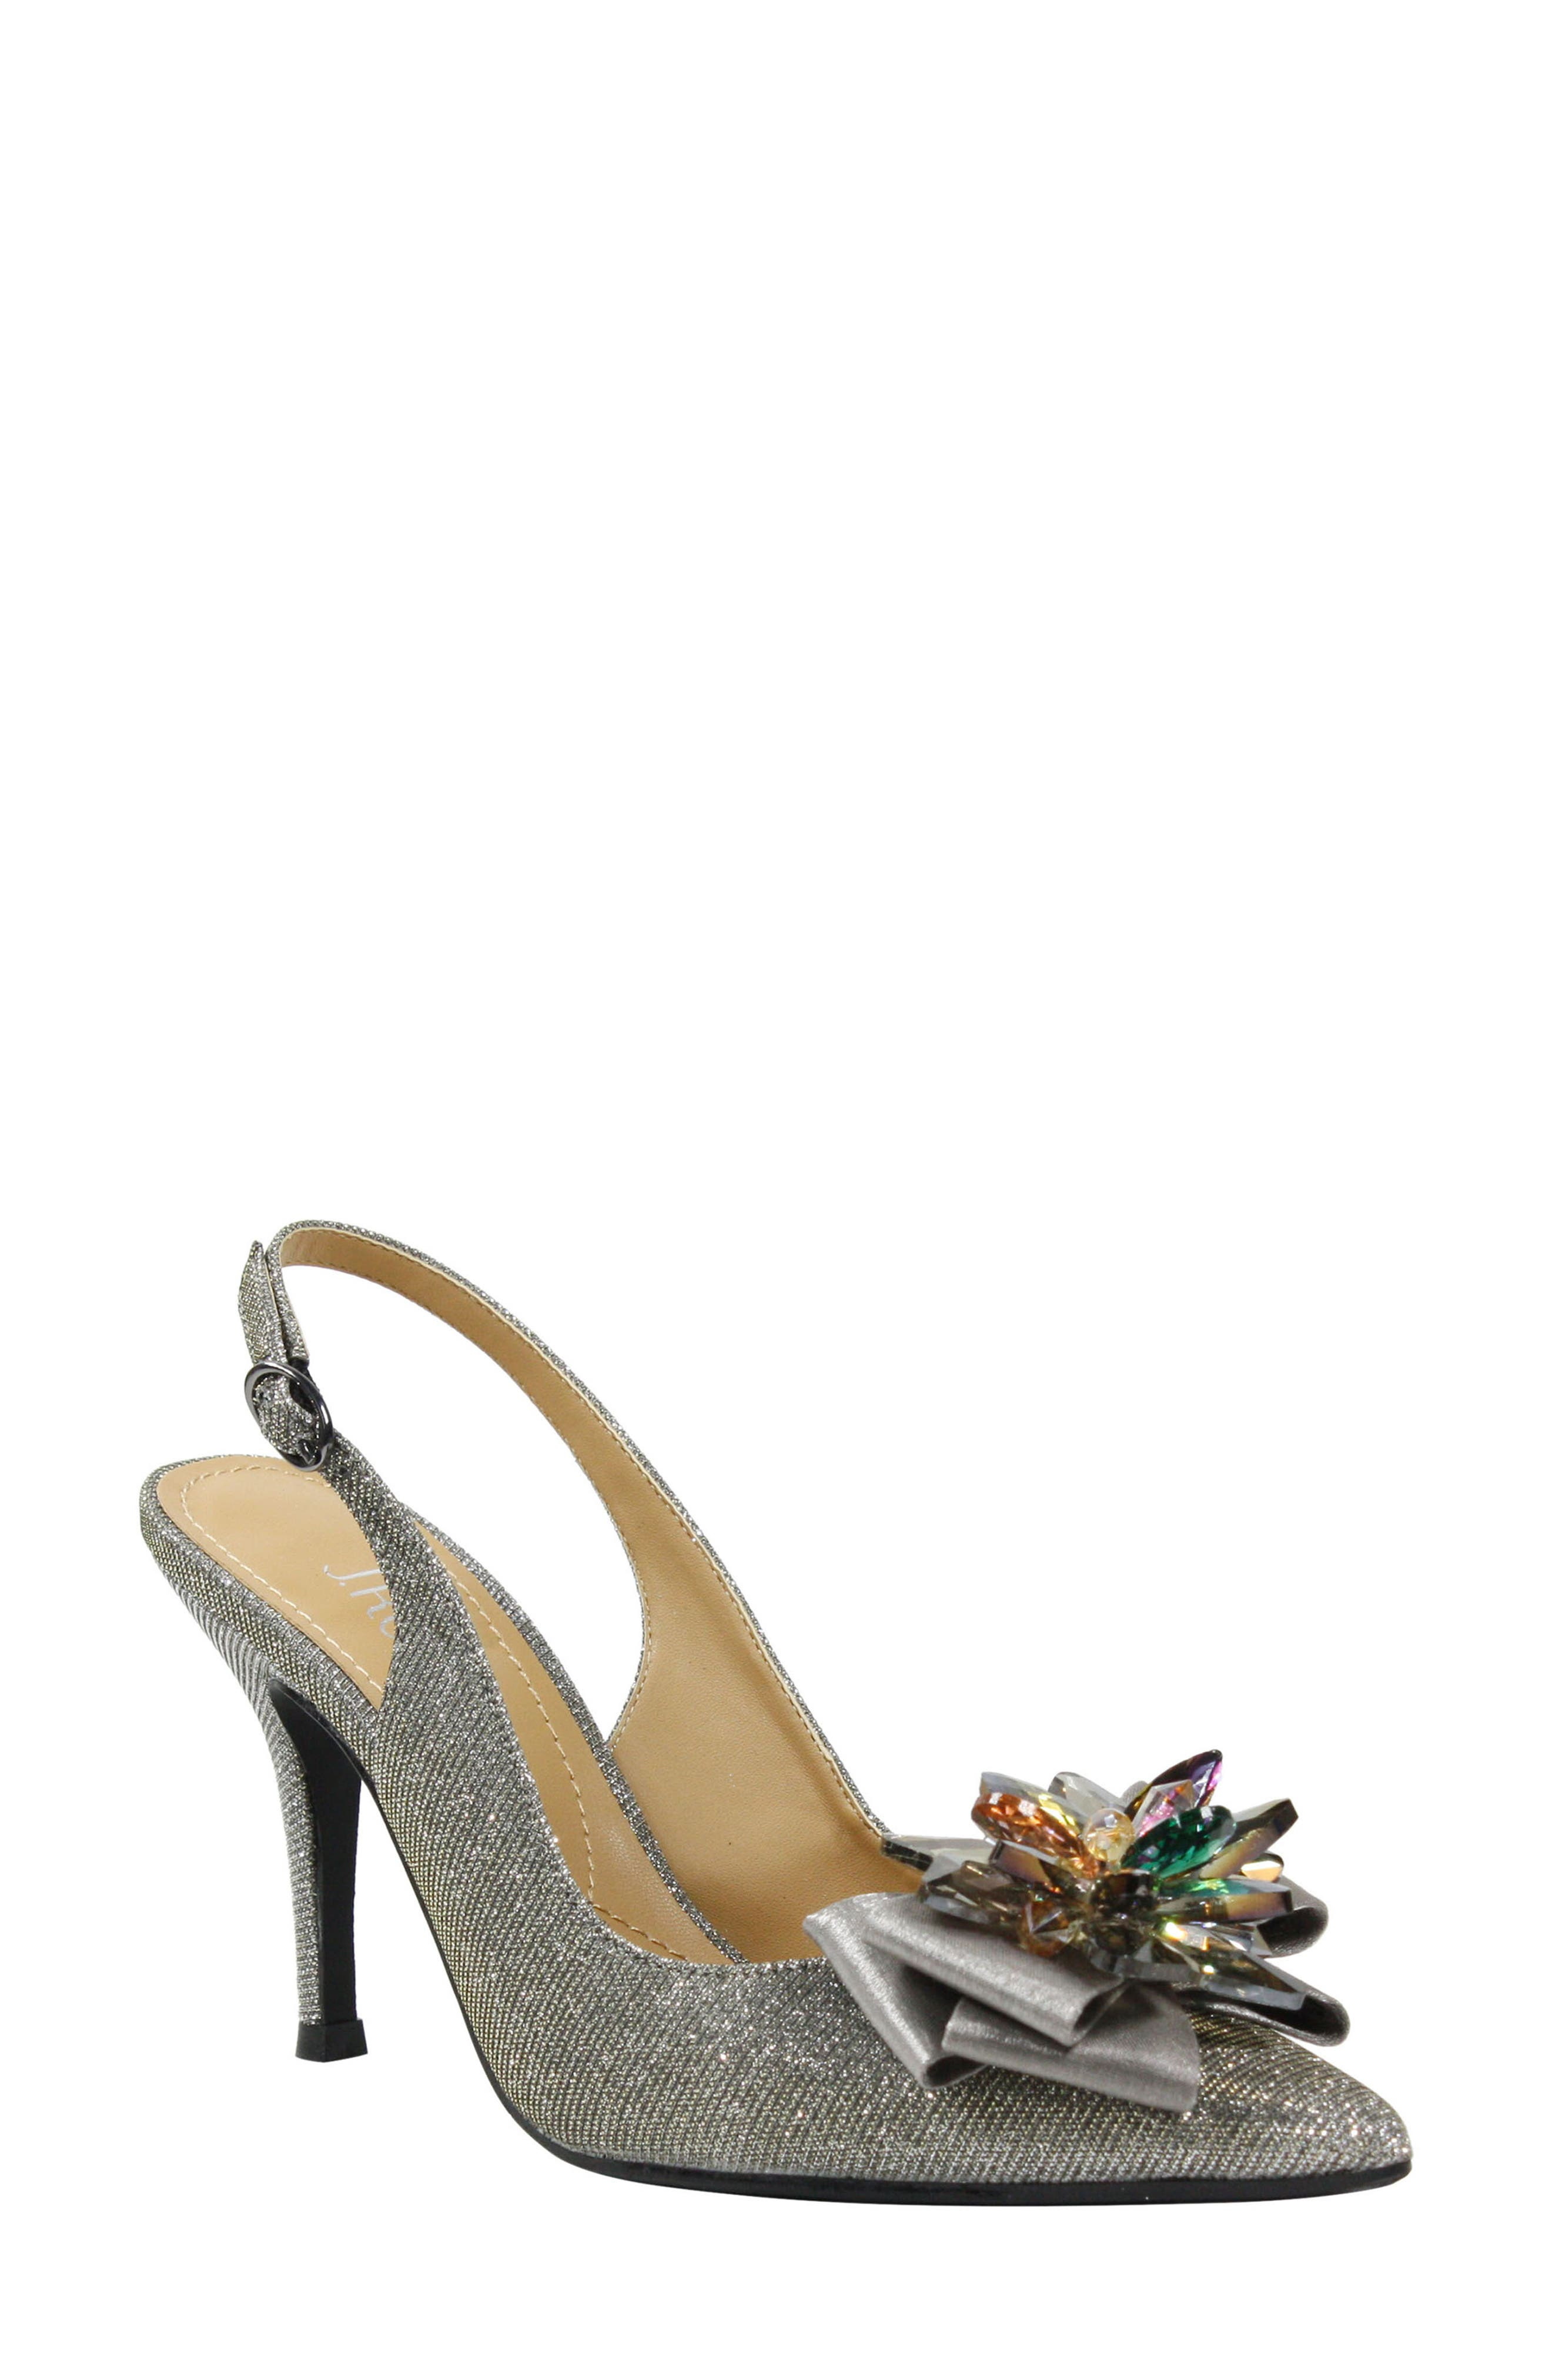 Glittery fabric, a faceted crystal ornament and a layered bow glam up a pointy-toe pump that\\\'s perfect for formal events or fancy dinners. A cushioned memory-foam footbed keeps you comfortable should you decide to hit the dance floor. Style Name:J. Renee Denyell Slingback Pump (Women). Style Number: 5798692. Available in stores.